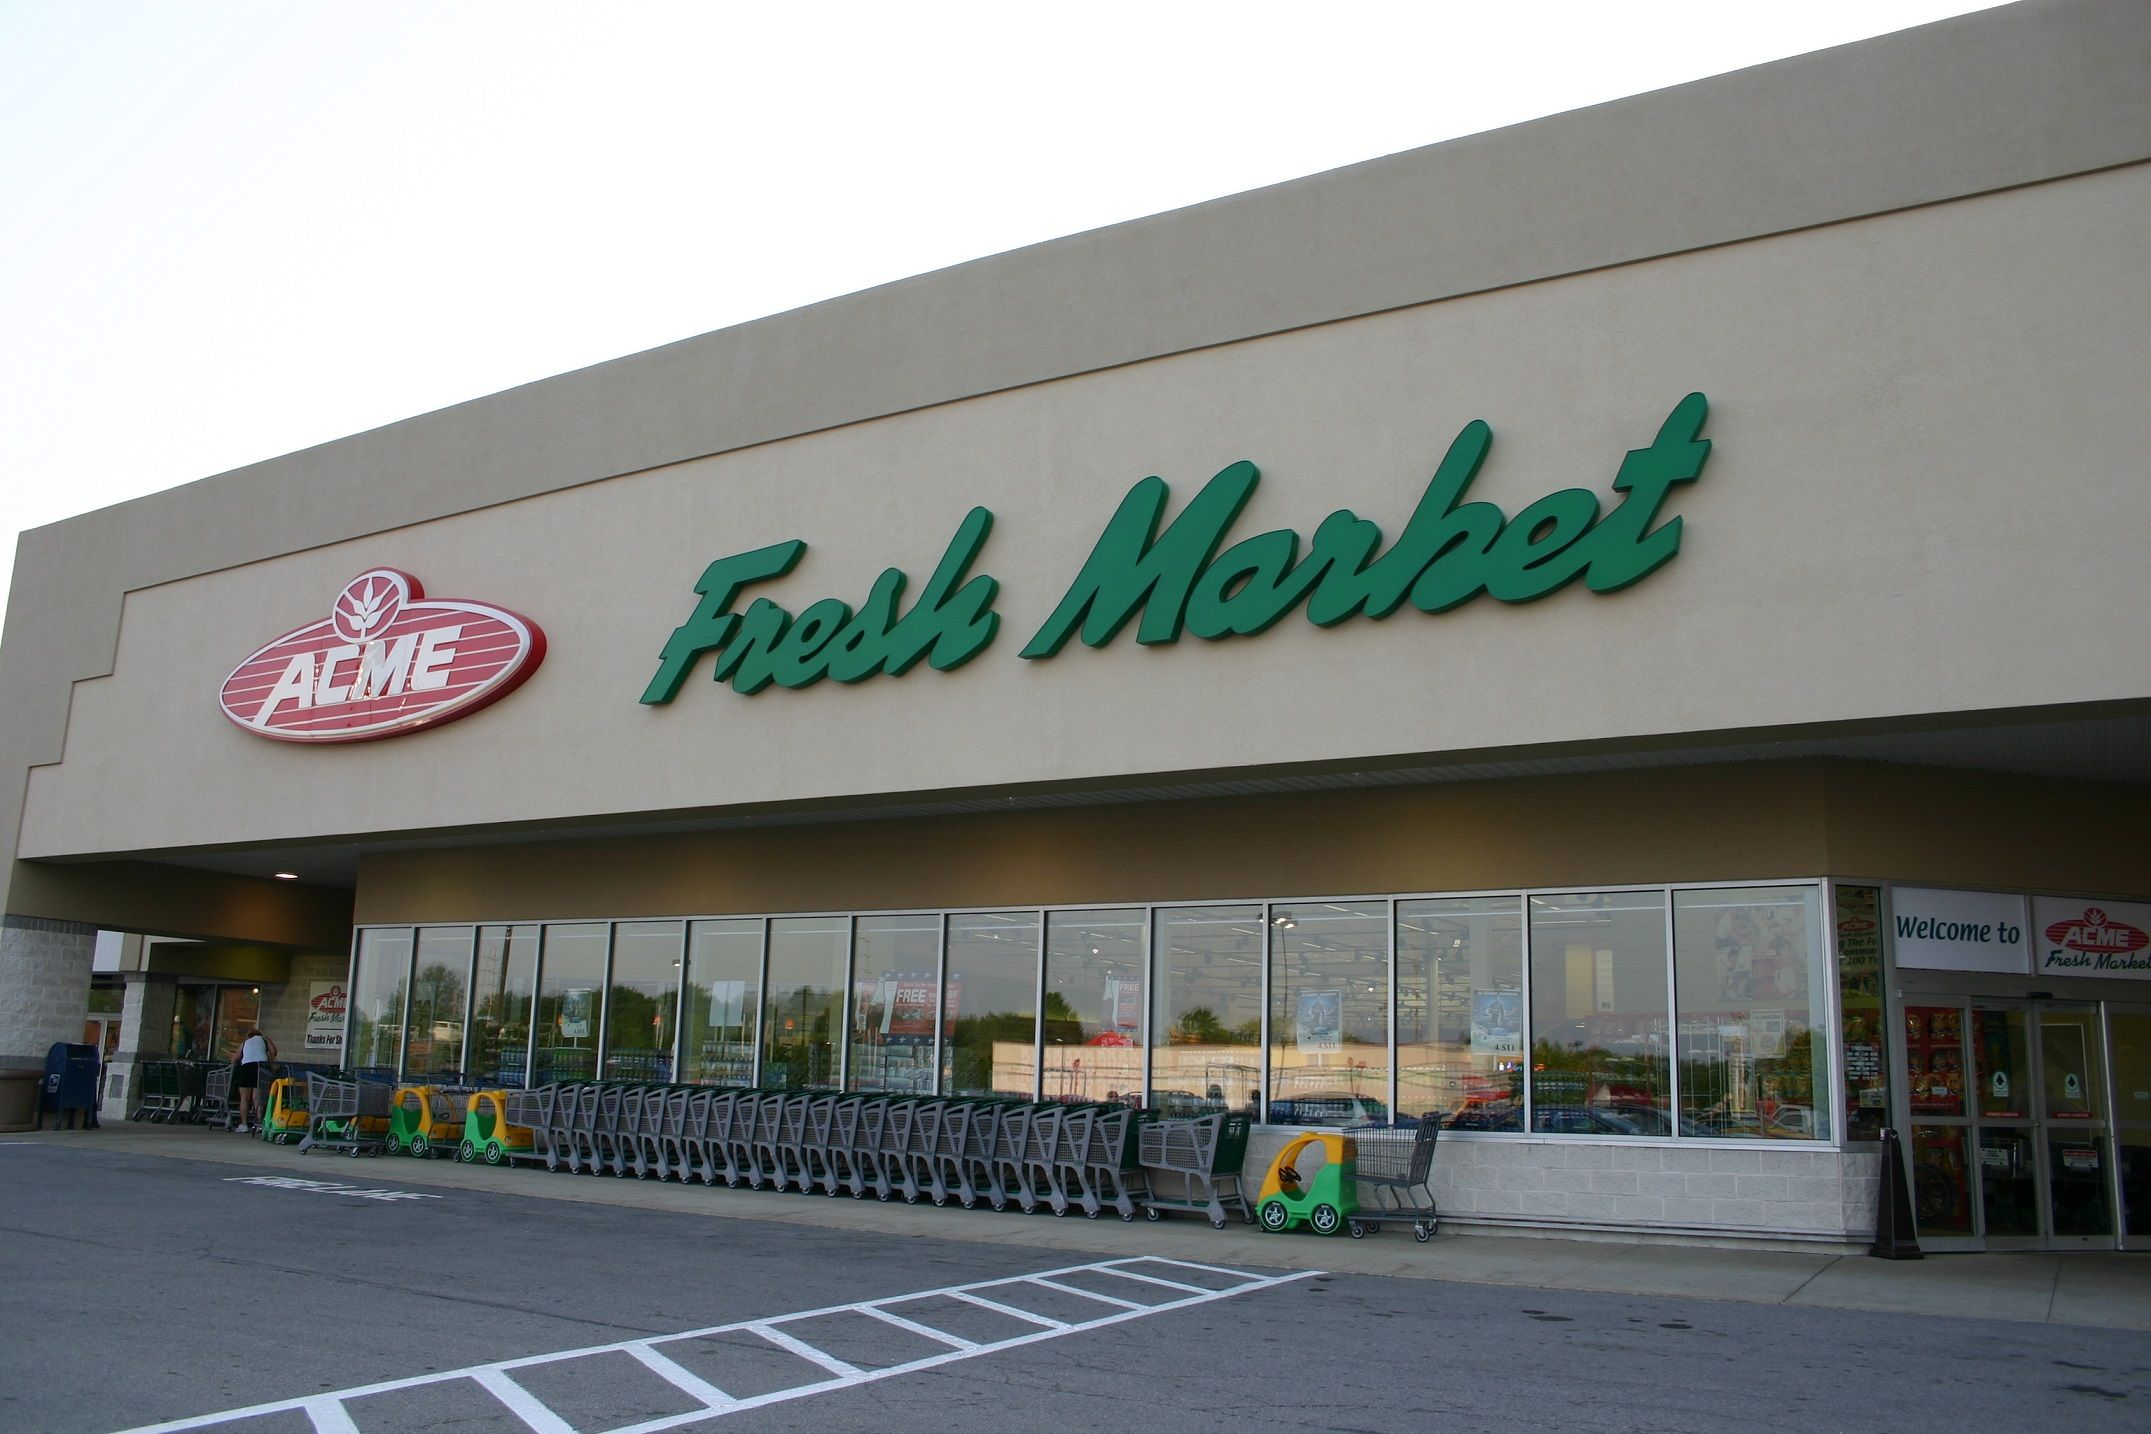 Fresh Market grocery store